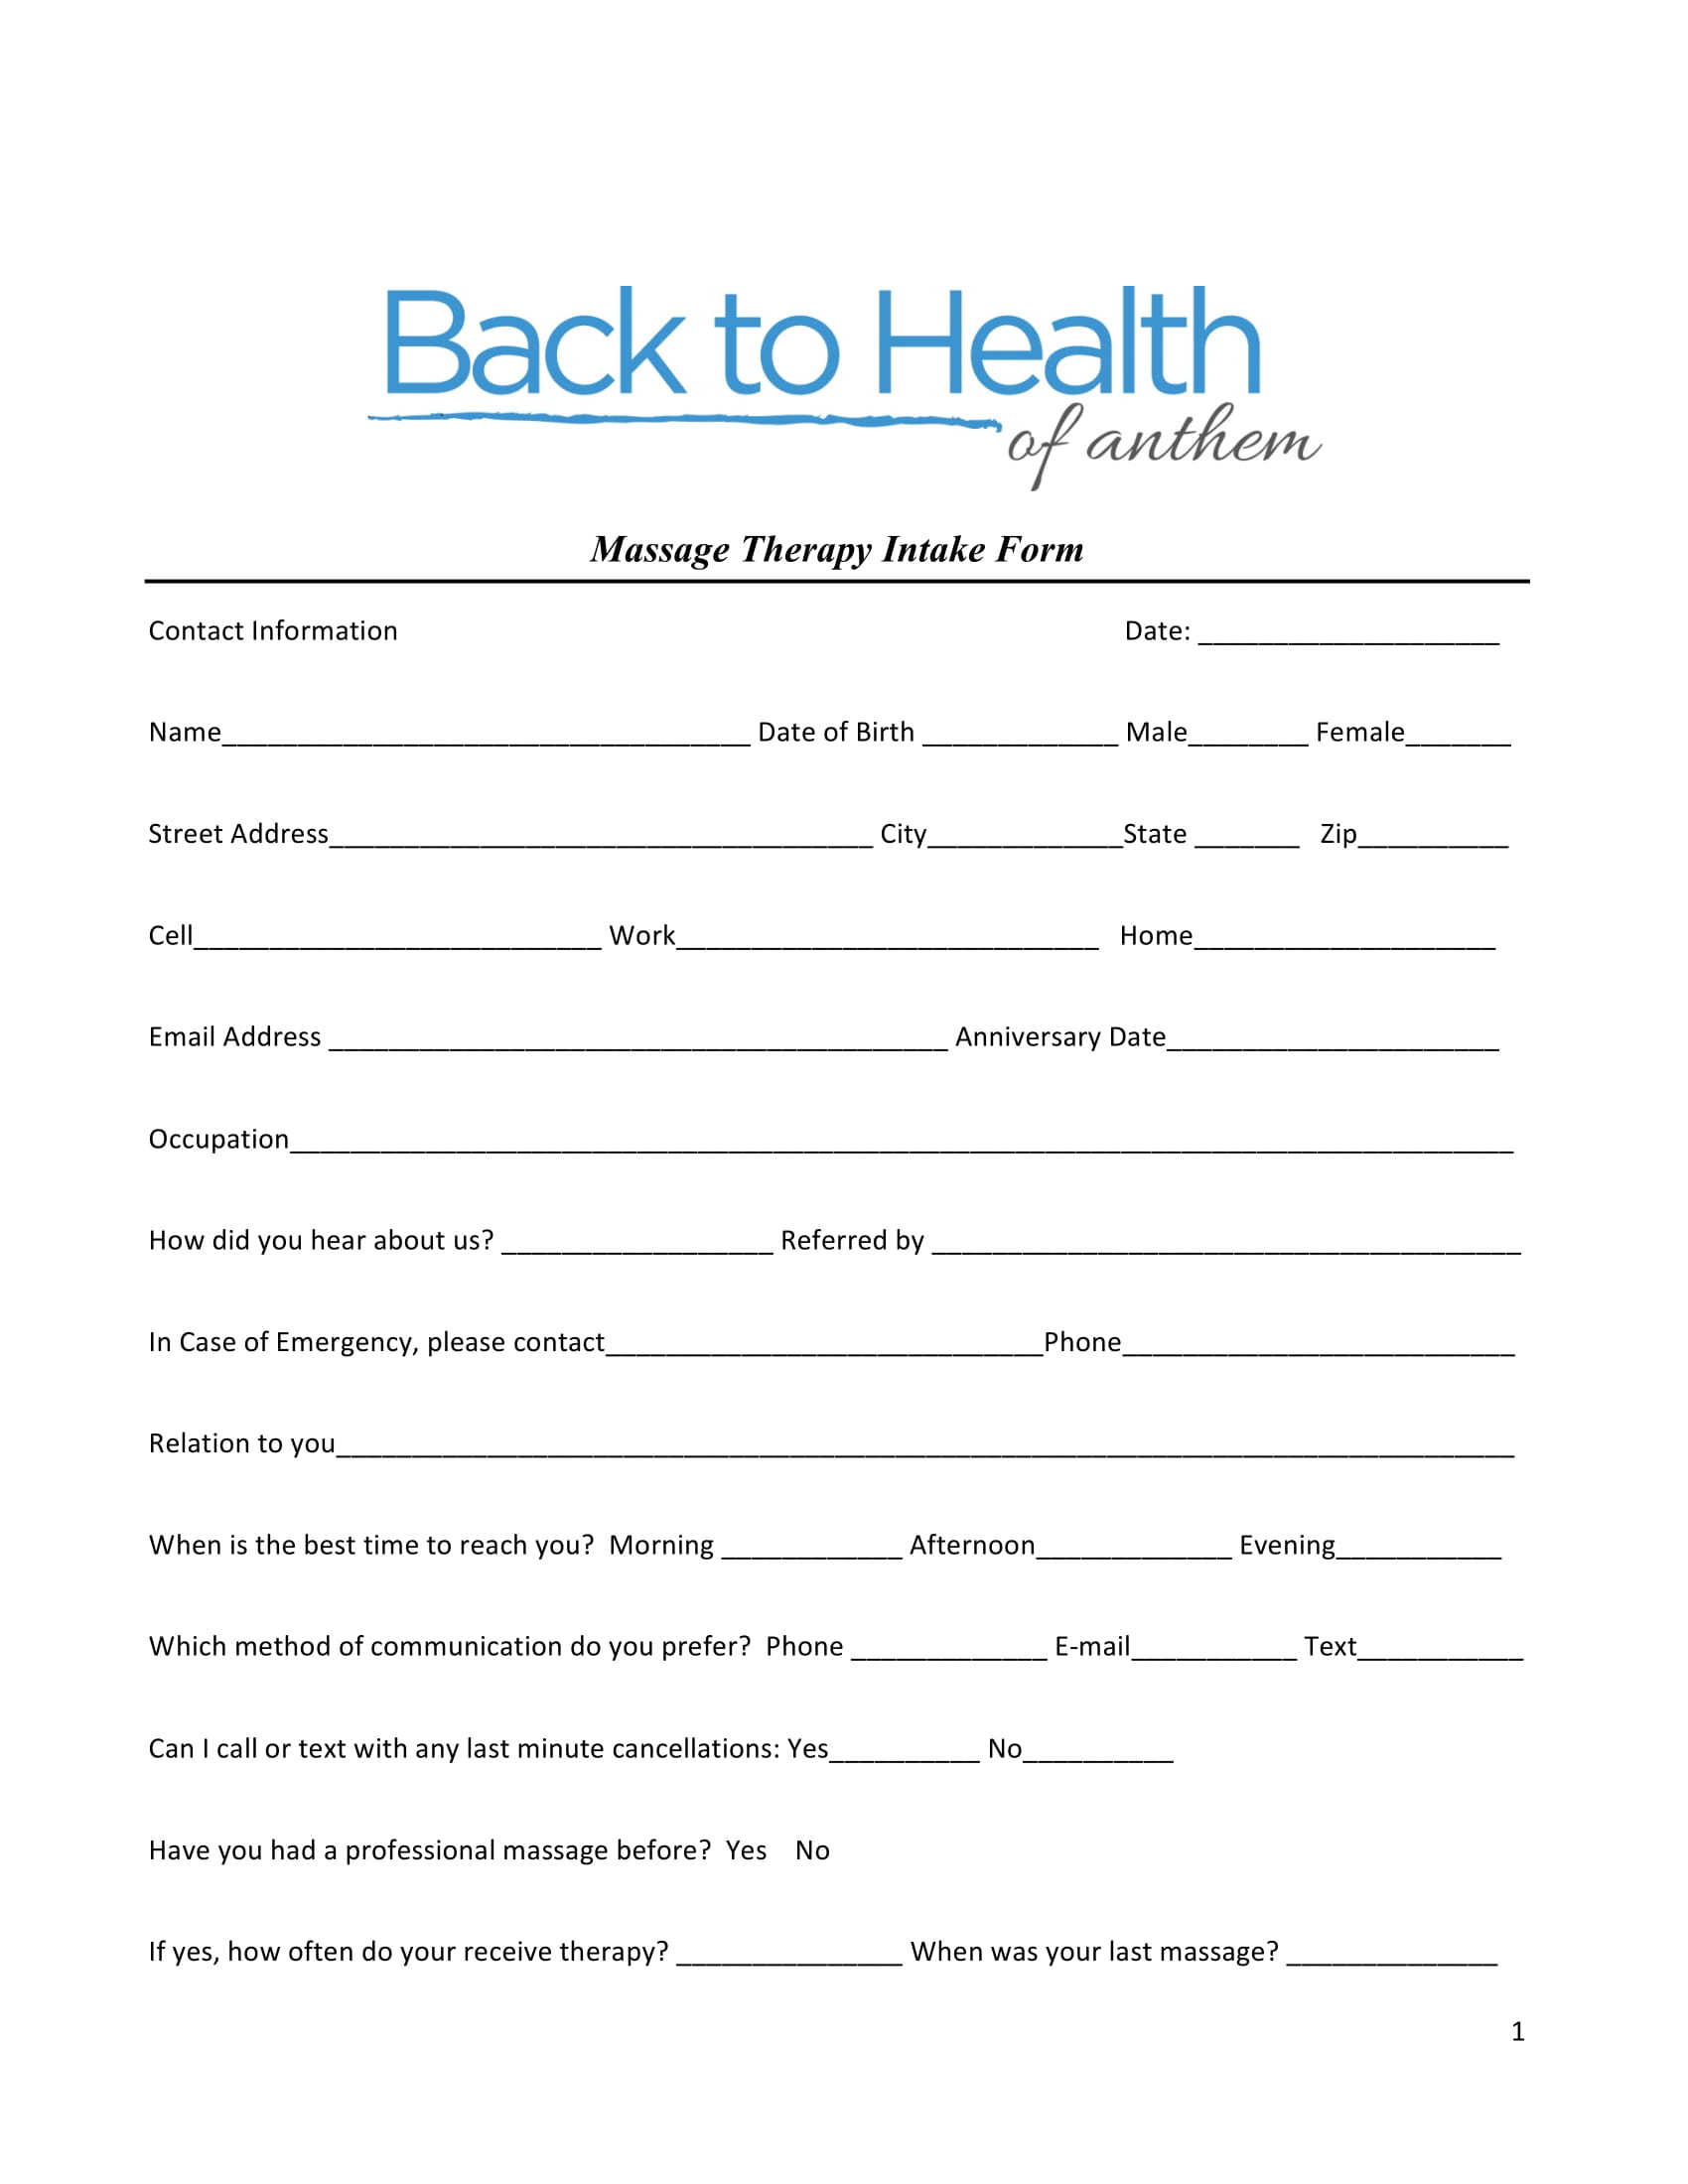 massage therapy intake form 1